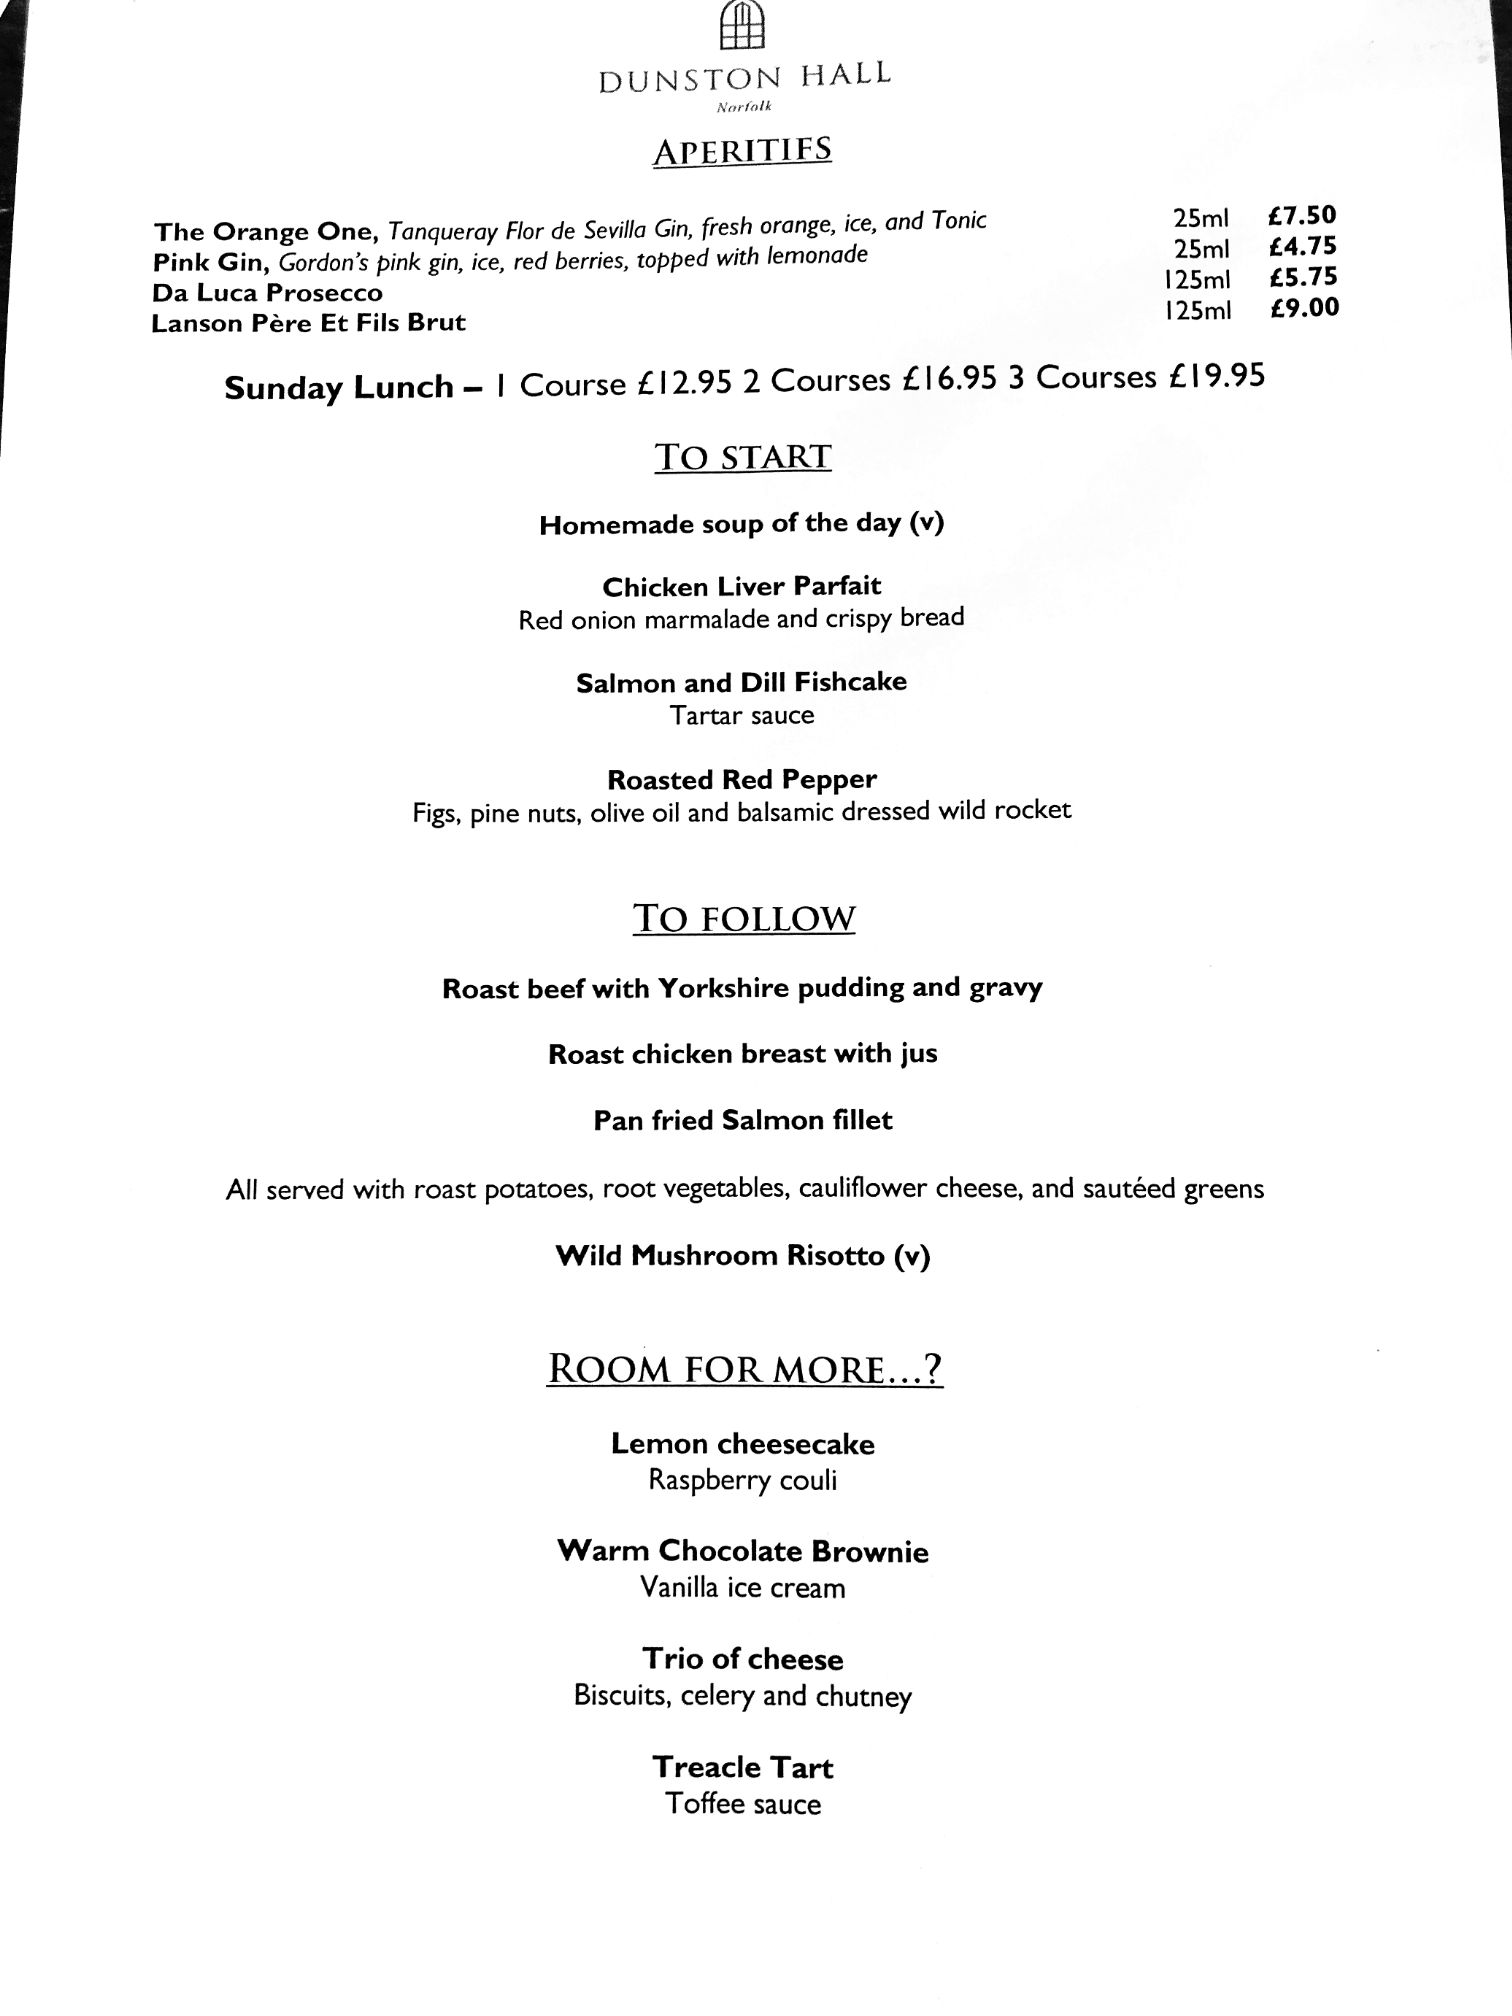 The Menu at The Brasserie